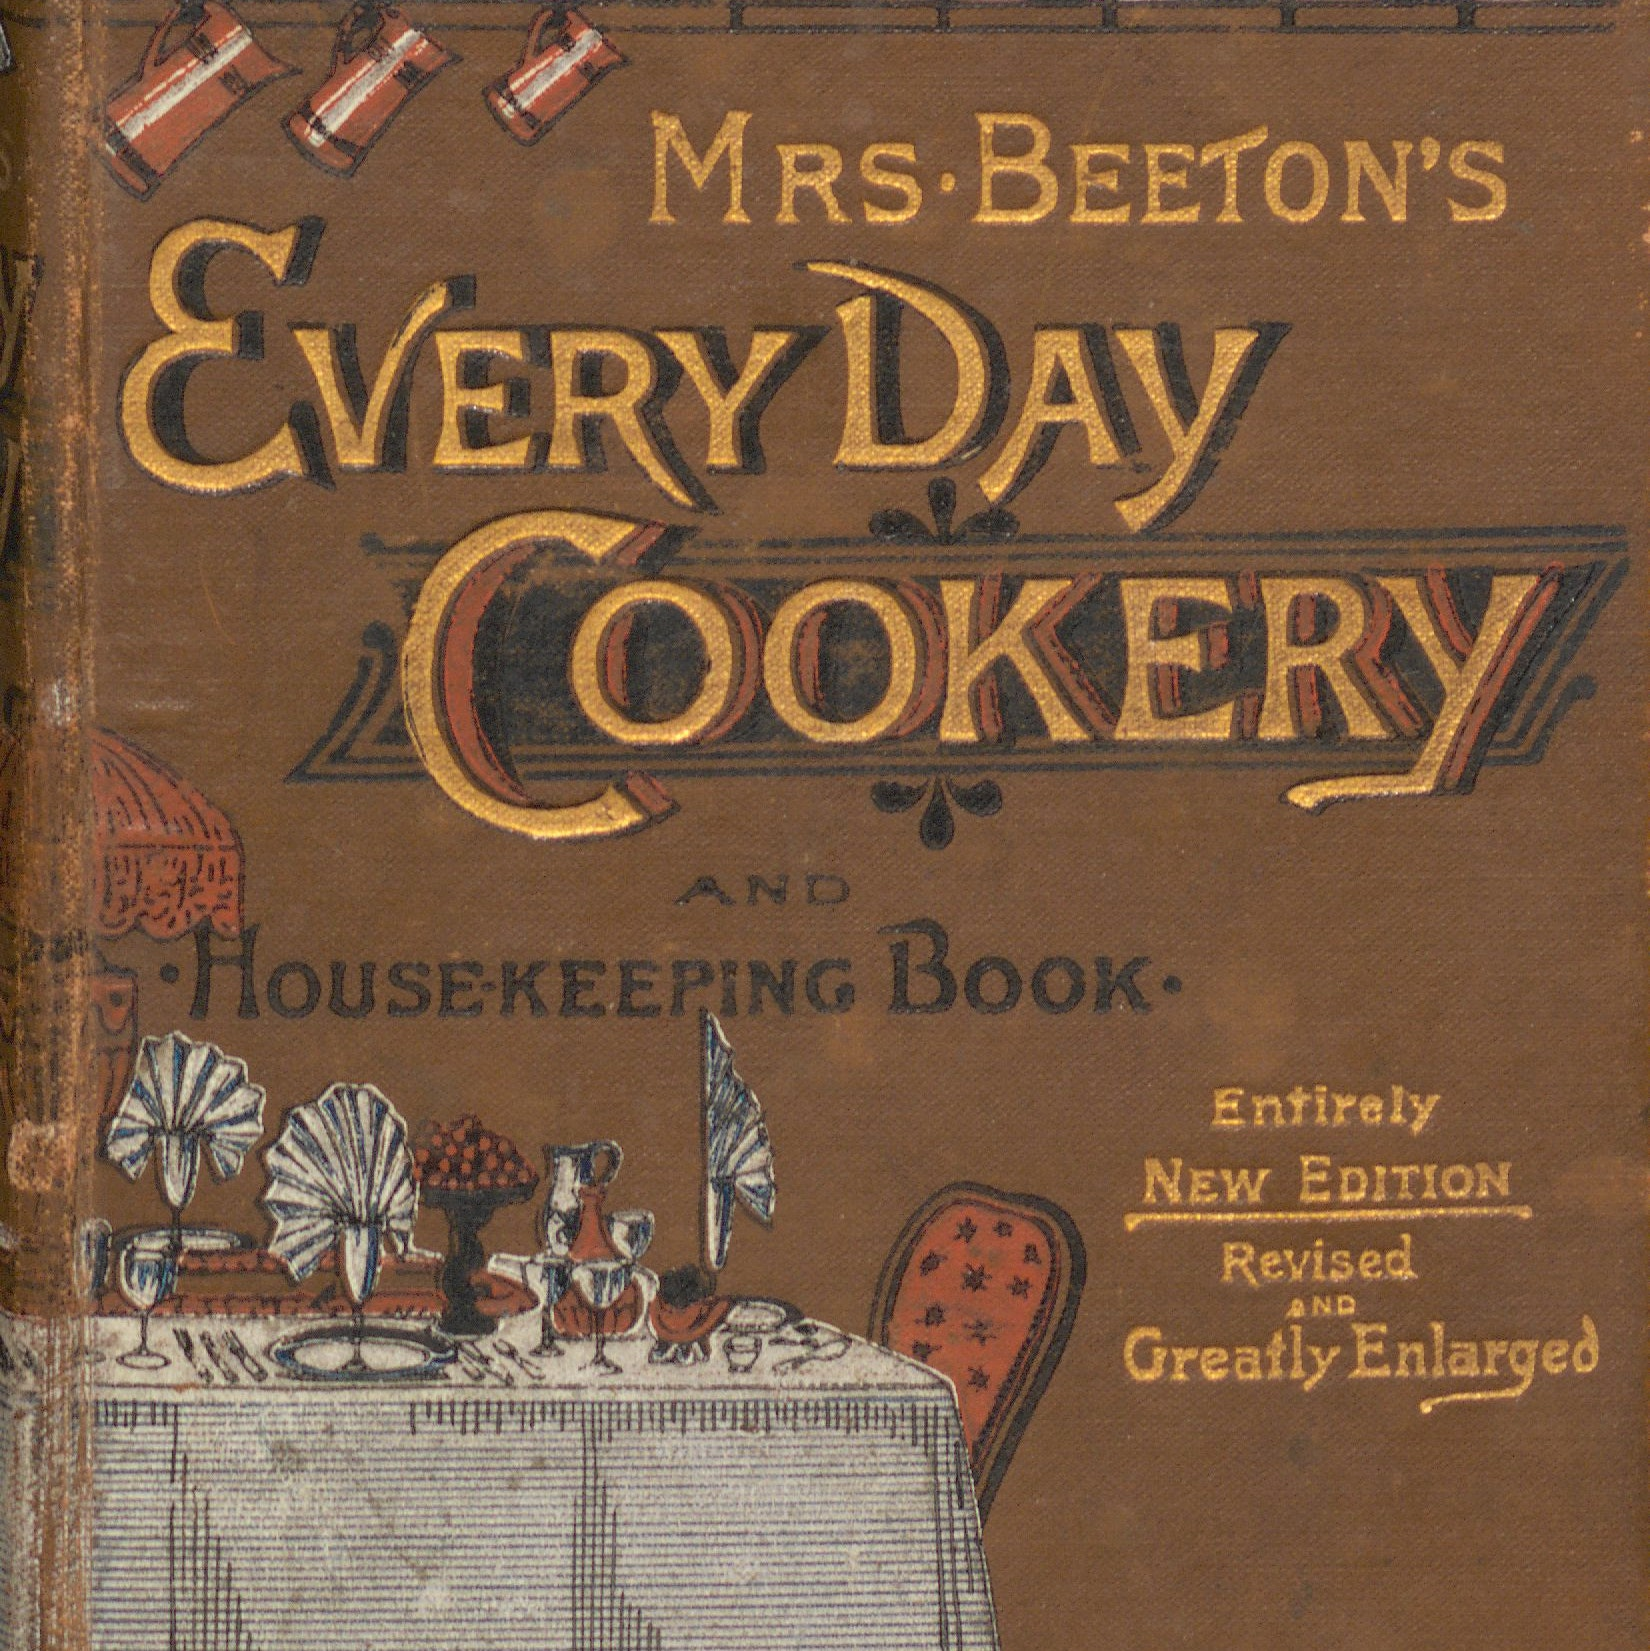 Cookery and housekeeping book